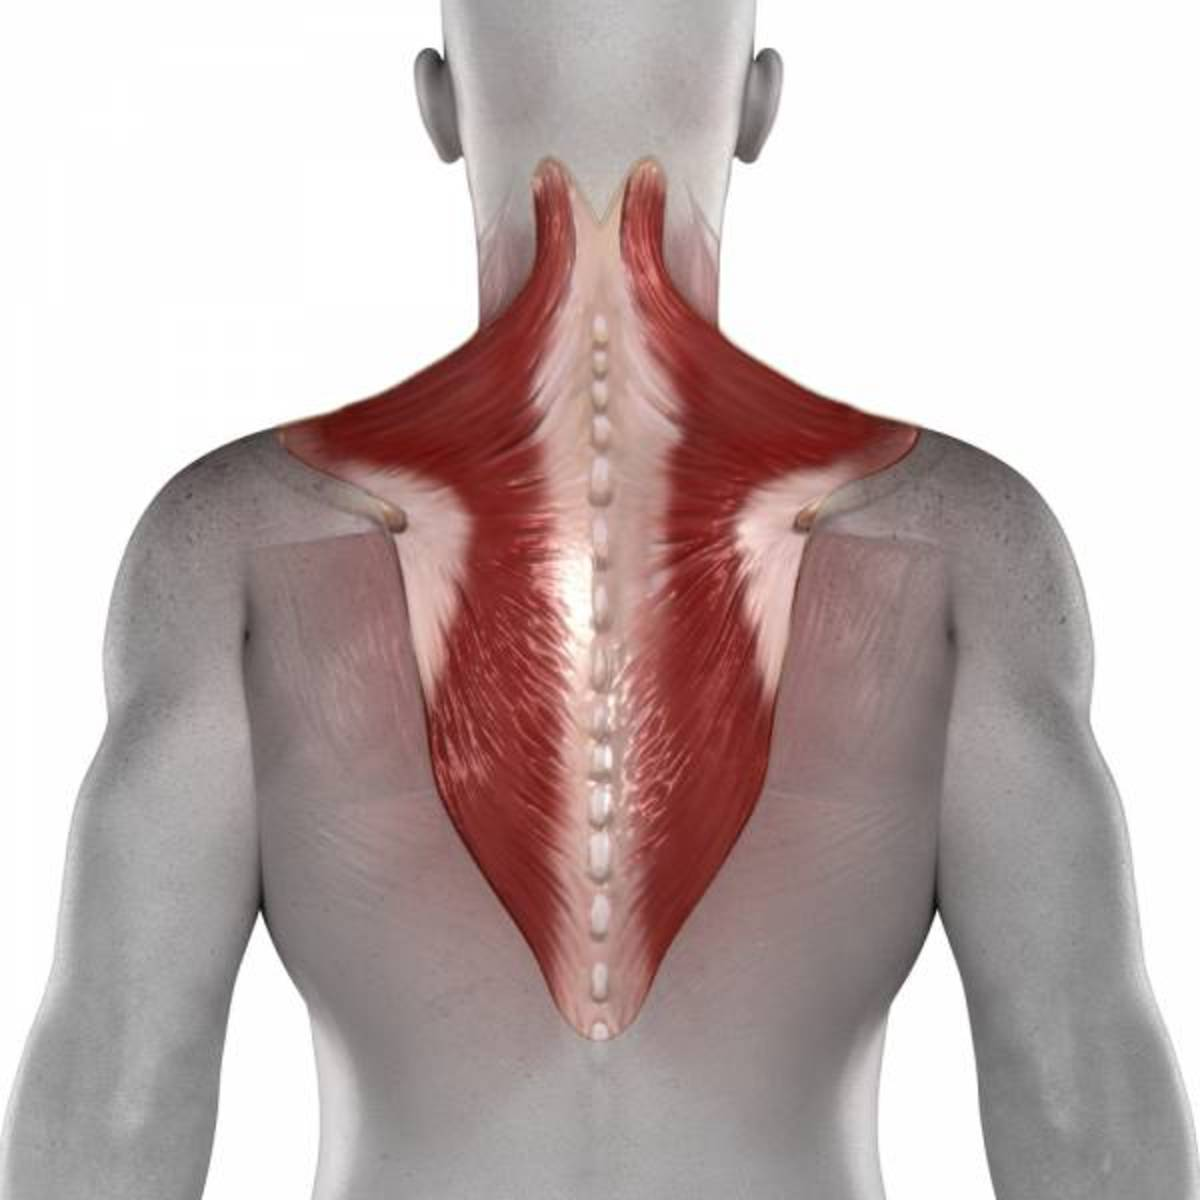 Your trapezius covers a large portion or your back. By developing your traps, you increase the musculature of your back greatly.